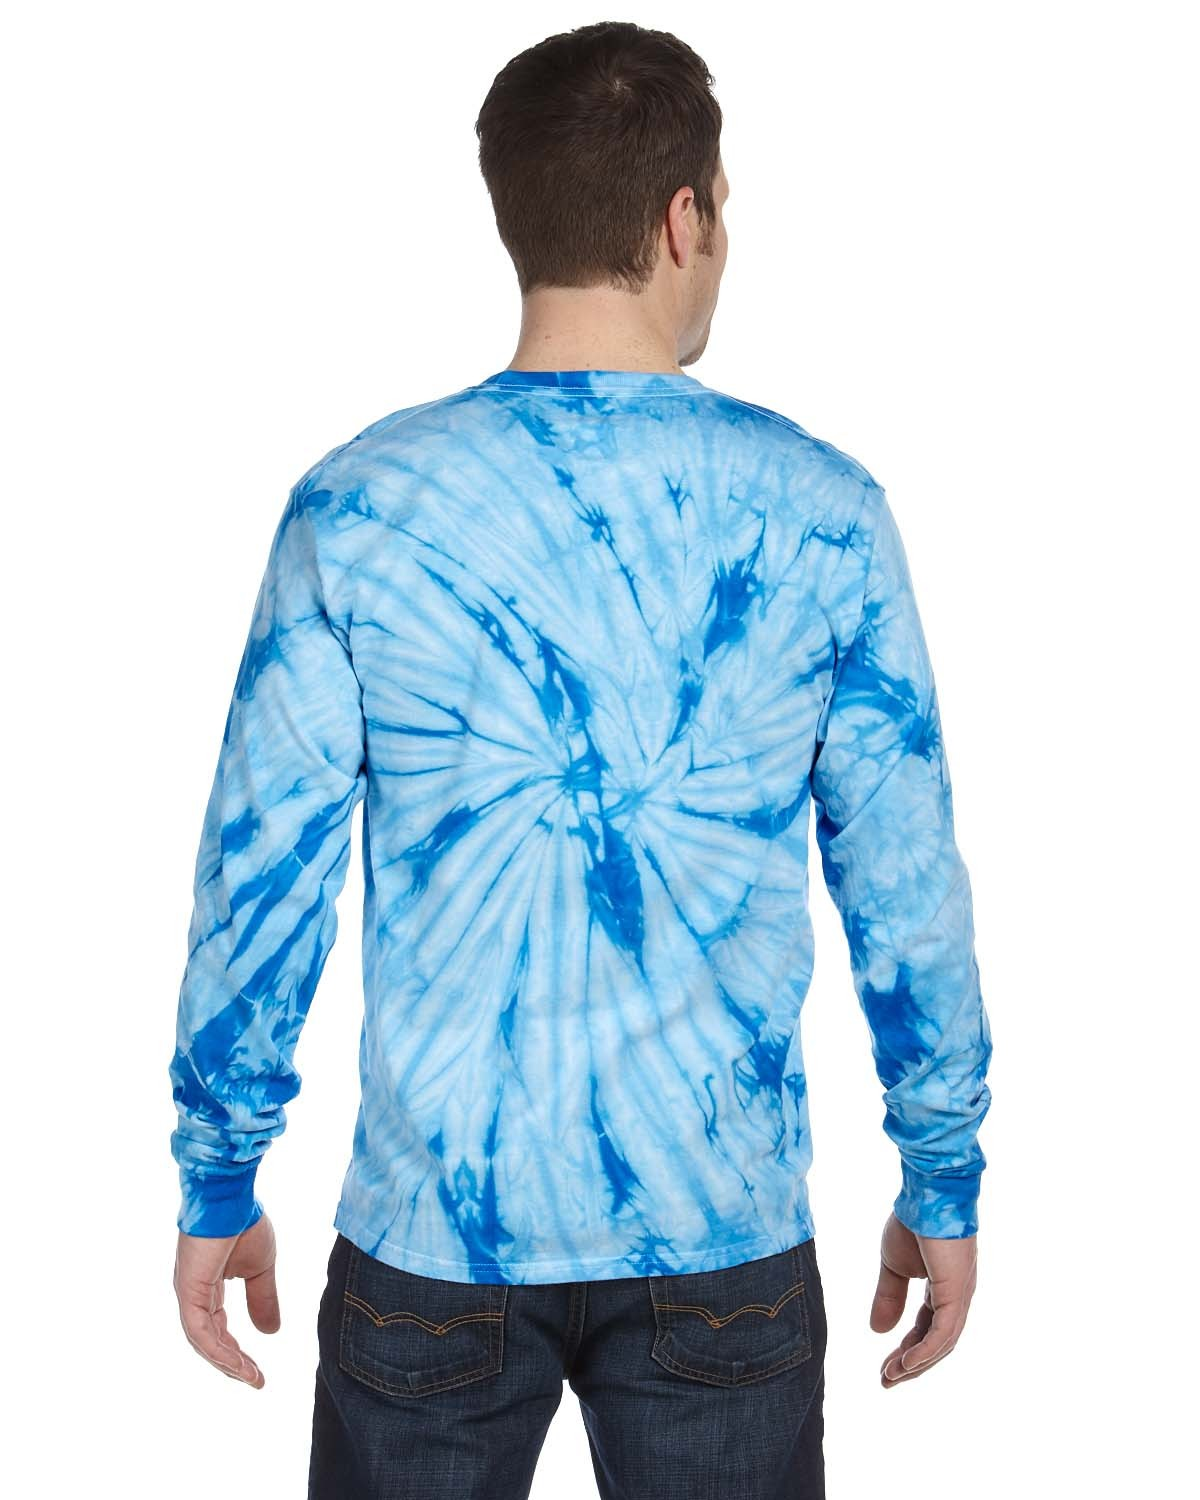 CD2000 Tie-Dye SPIDER BABY BLUE